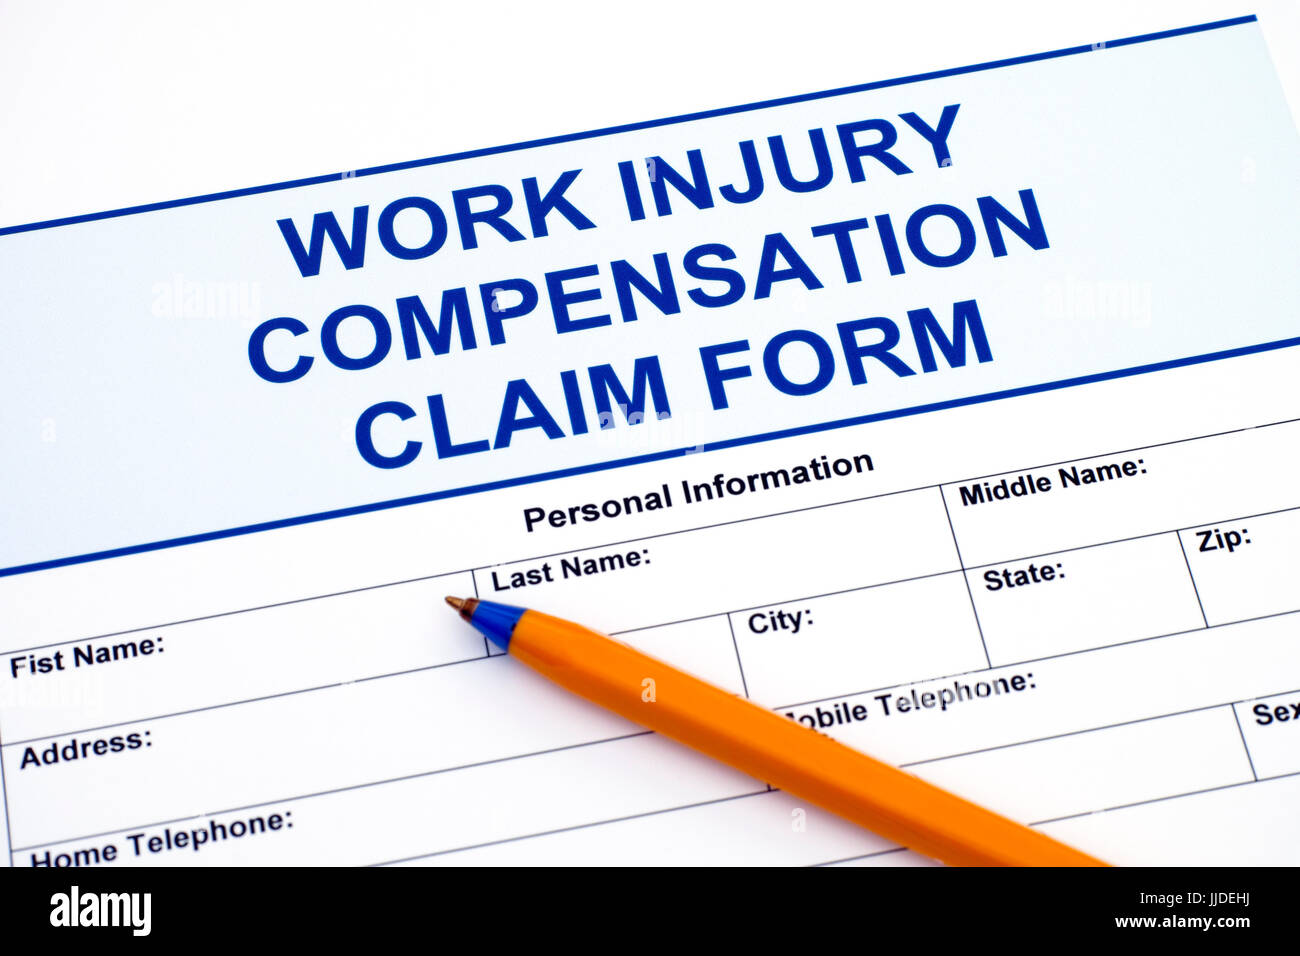 Work Injury Compensation Claim Form with ballpoint pen - Stock Image